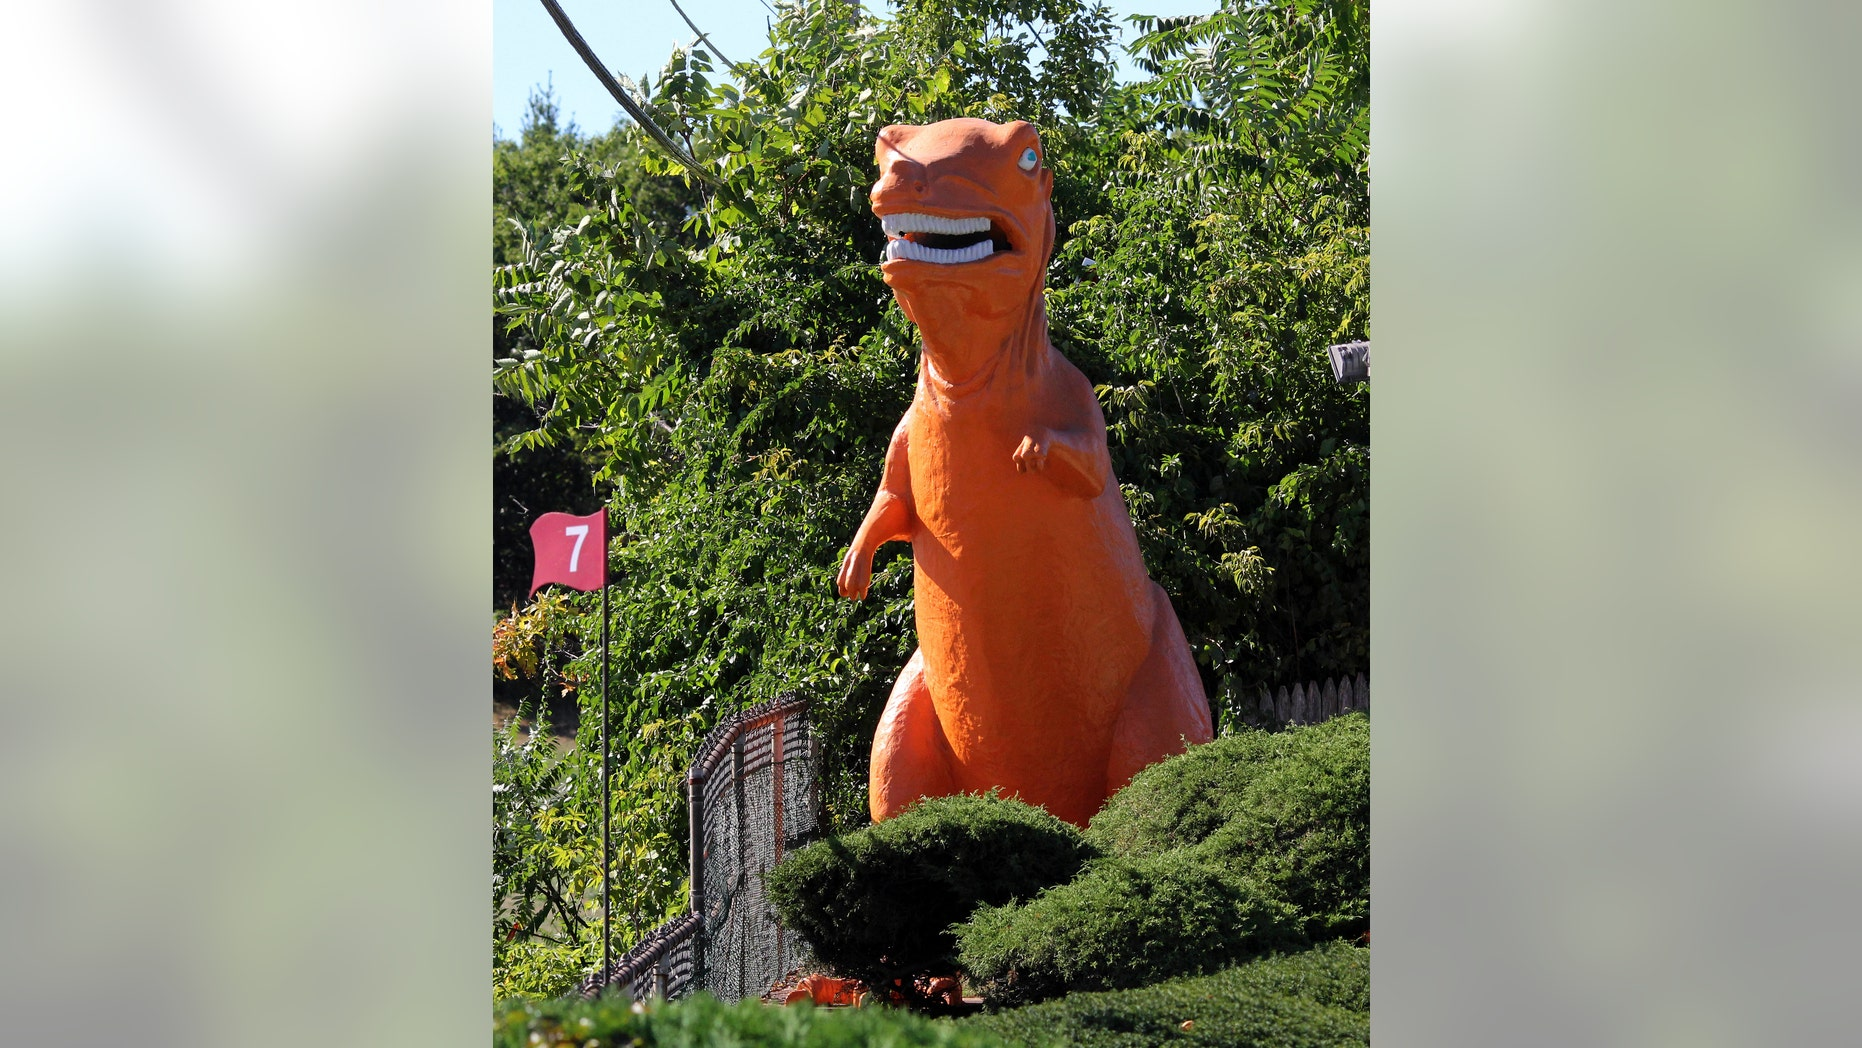 In this Monday, Sept. 12, 2016 photo, a 20-foot-high orange dinosaur stands near Route 1 in Saugus, Mass. Some feared the 20-foot dinosaur would disappear because the miniature golf course on which it has stood since 1958 was sold to a developer.